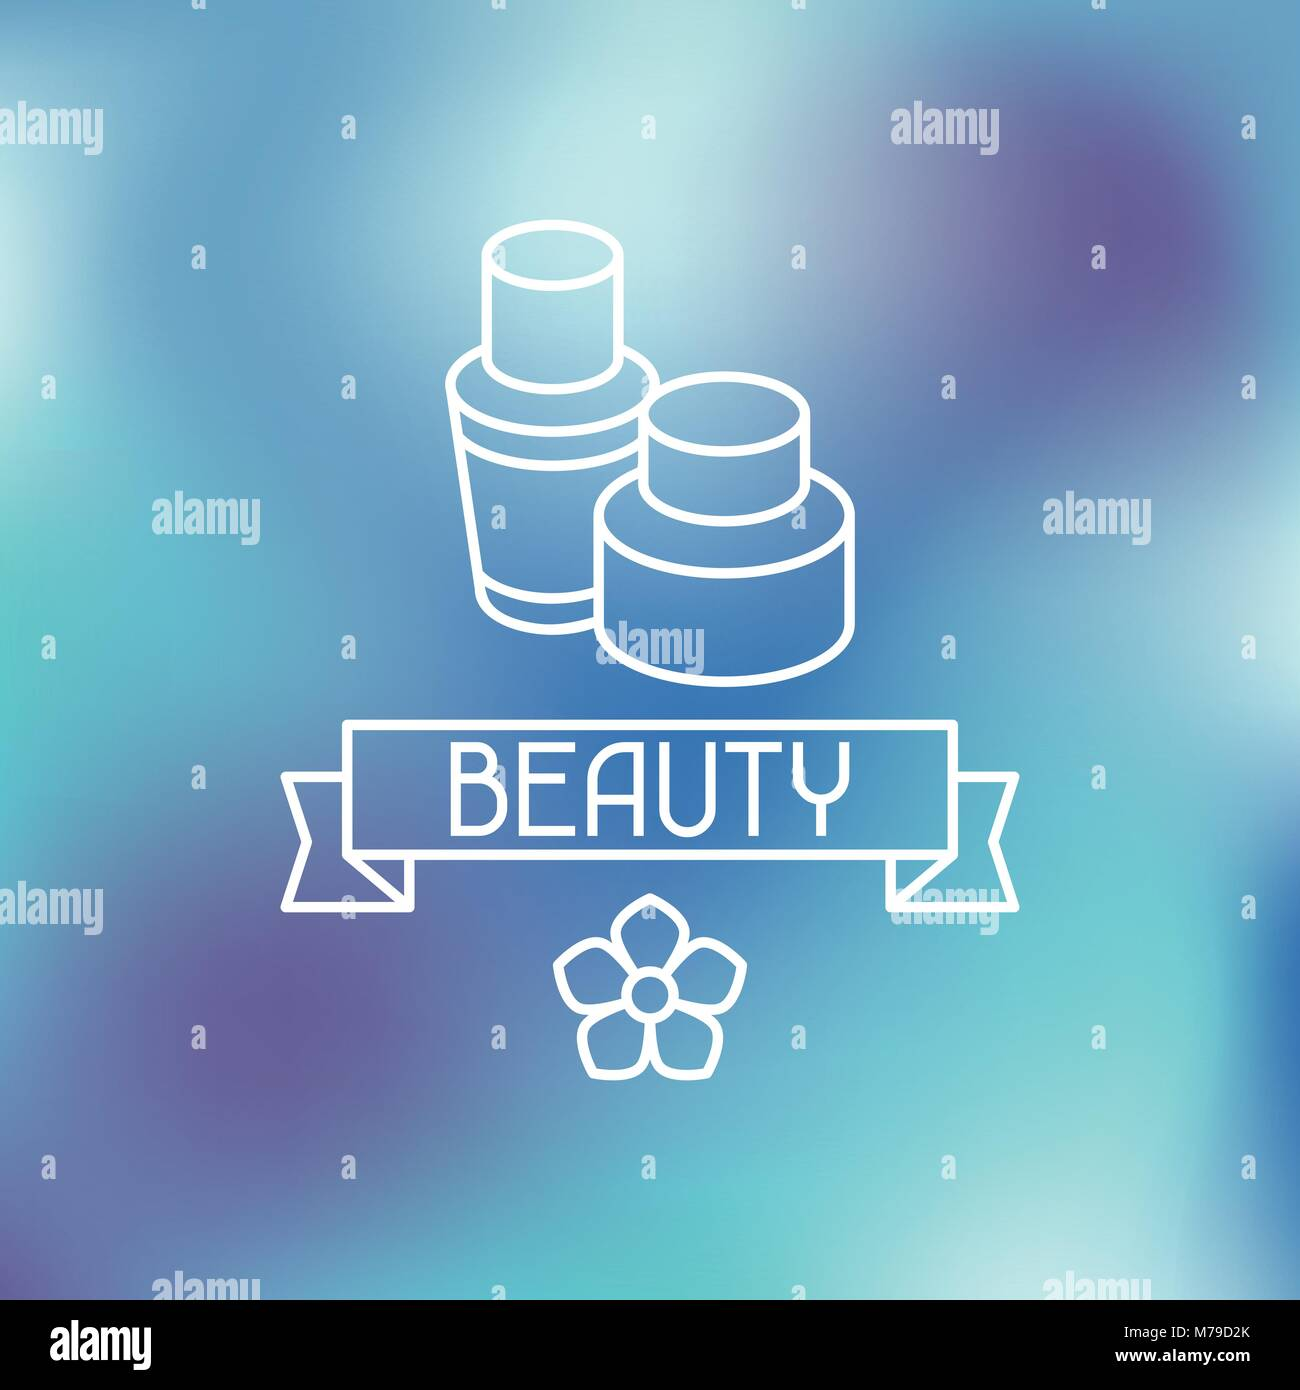 Spa beauty label on blurred background - Stock Vector